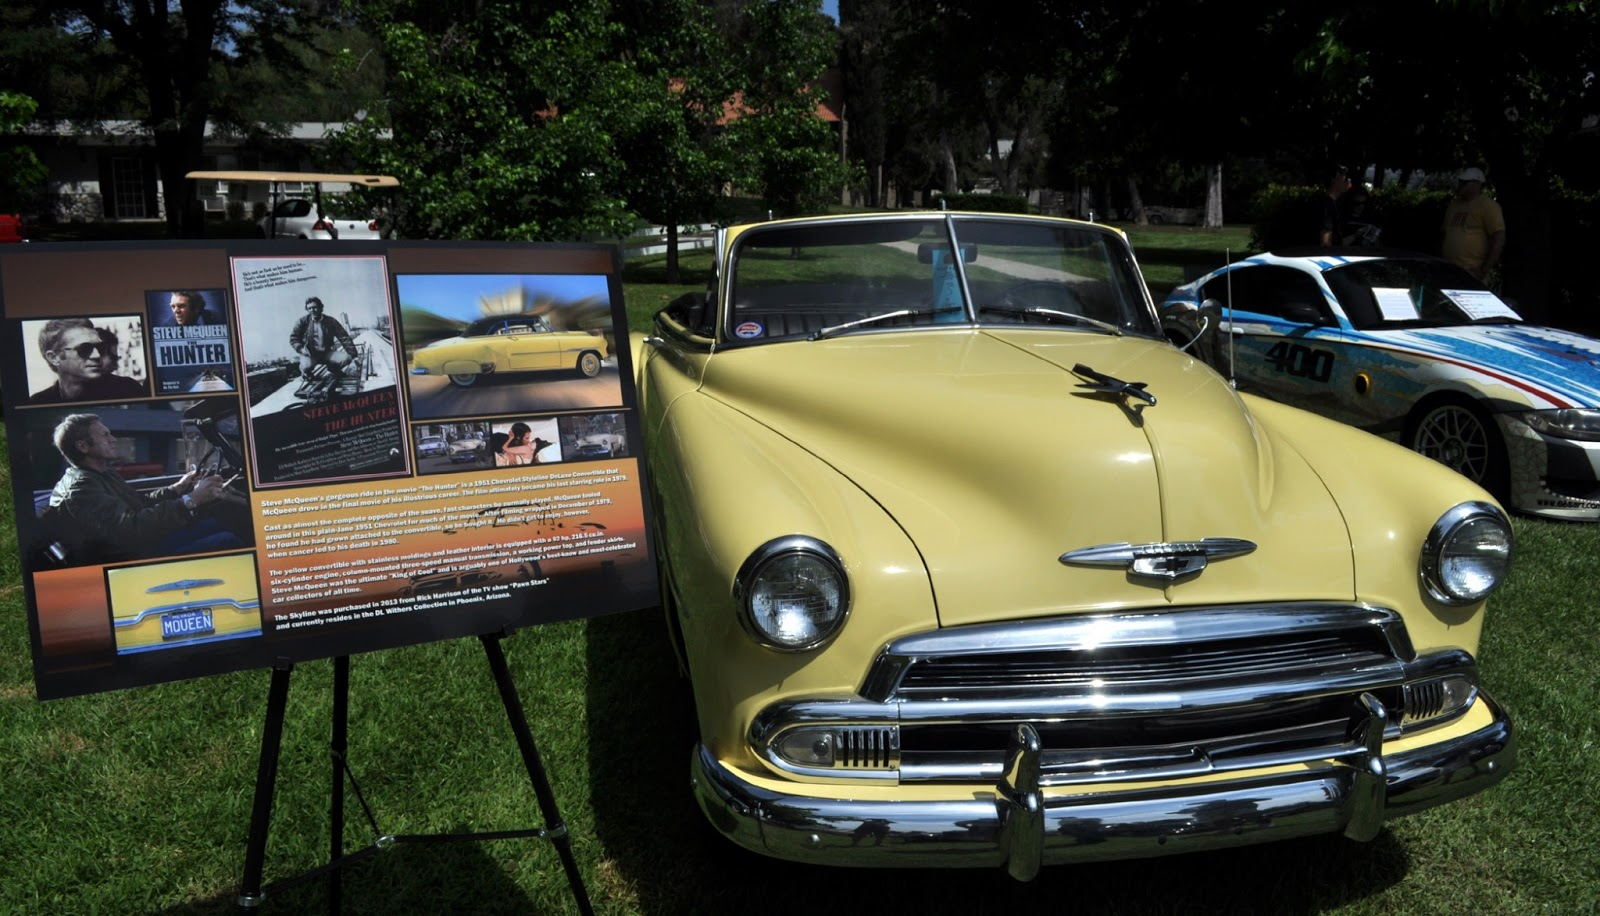 The Chevy That Steve McQueen Drove In The Movie The Hunter Was - Chino hills car show